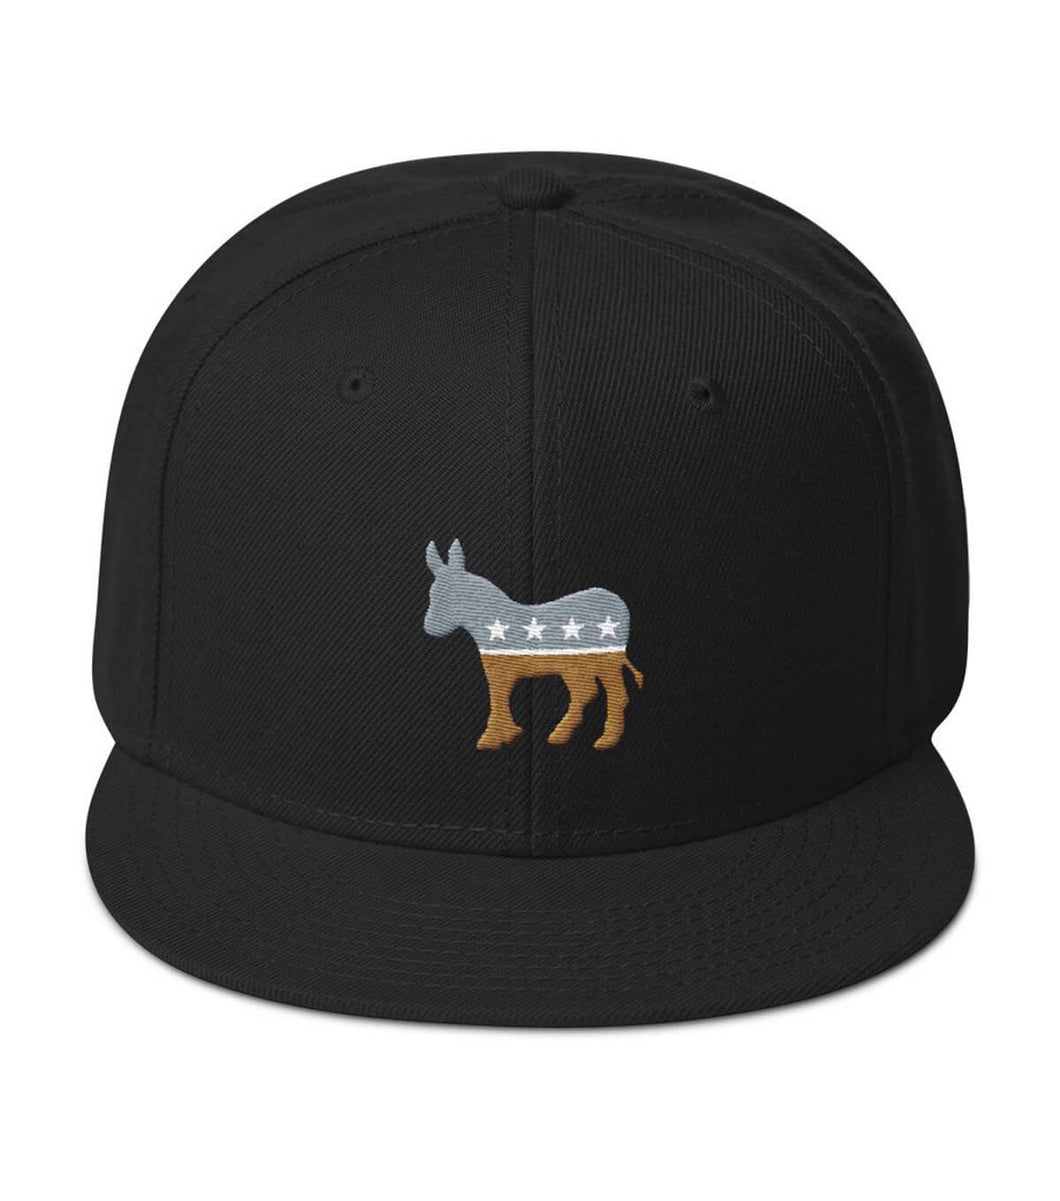 Silver/Gold Democratic Snapback